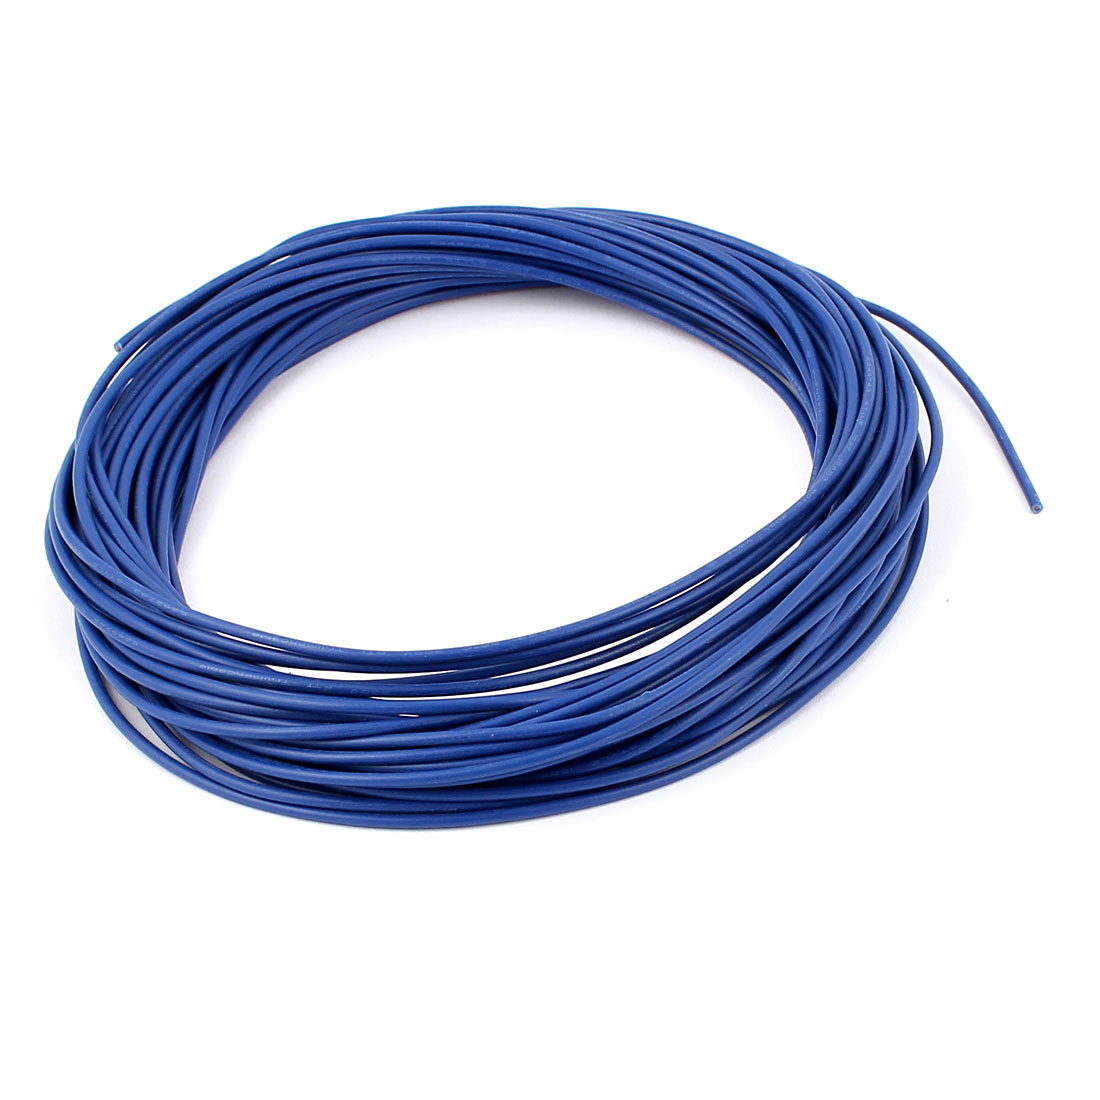 15M 18AWG Electric Insulated Copper Core Flexible PVC Wire Cable Blue